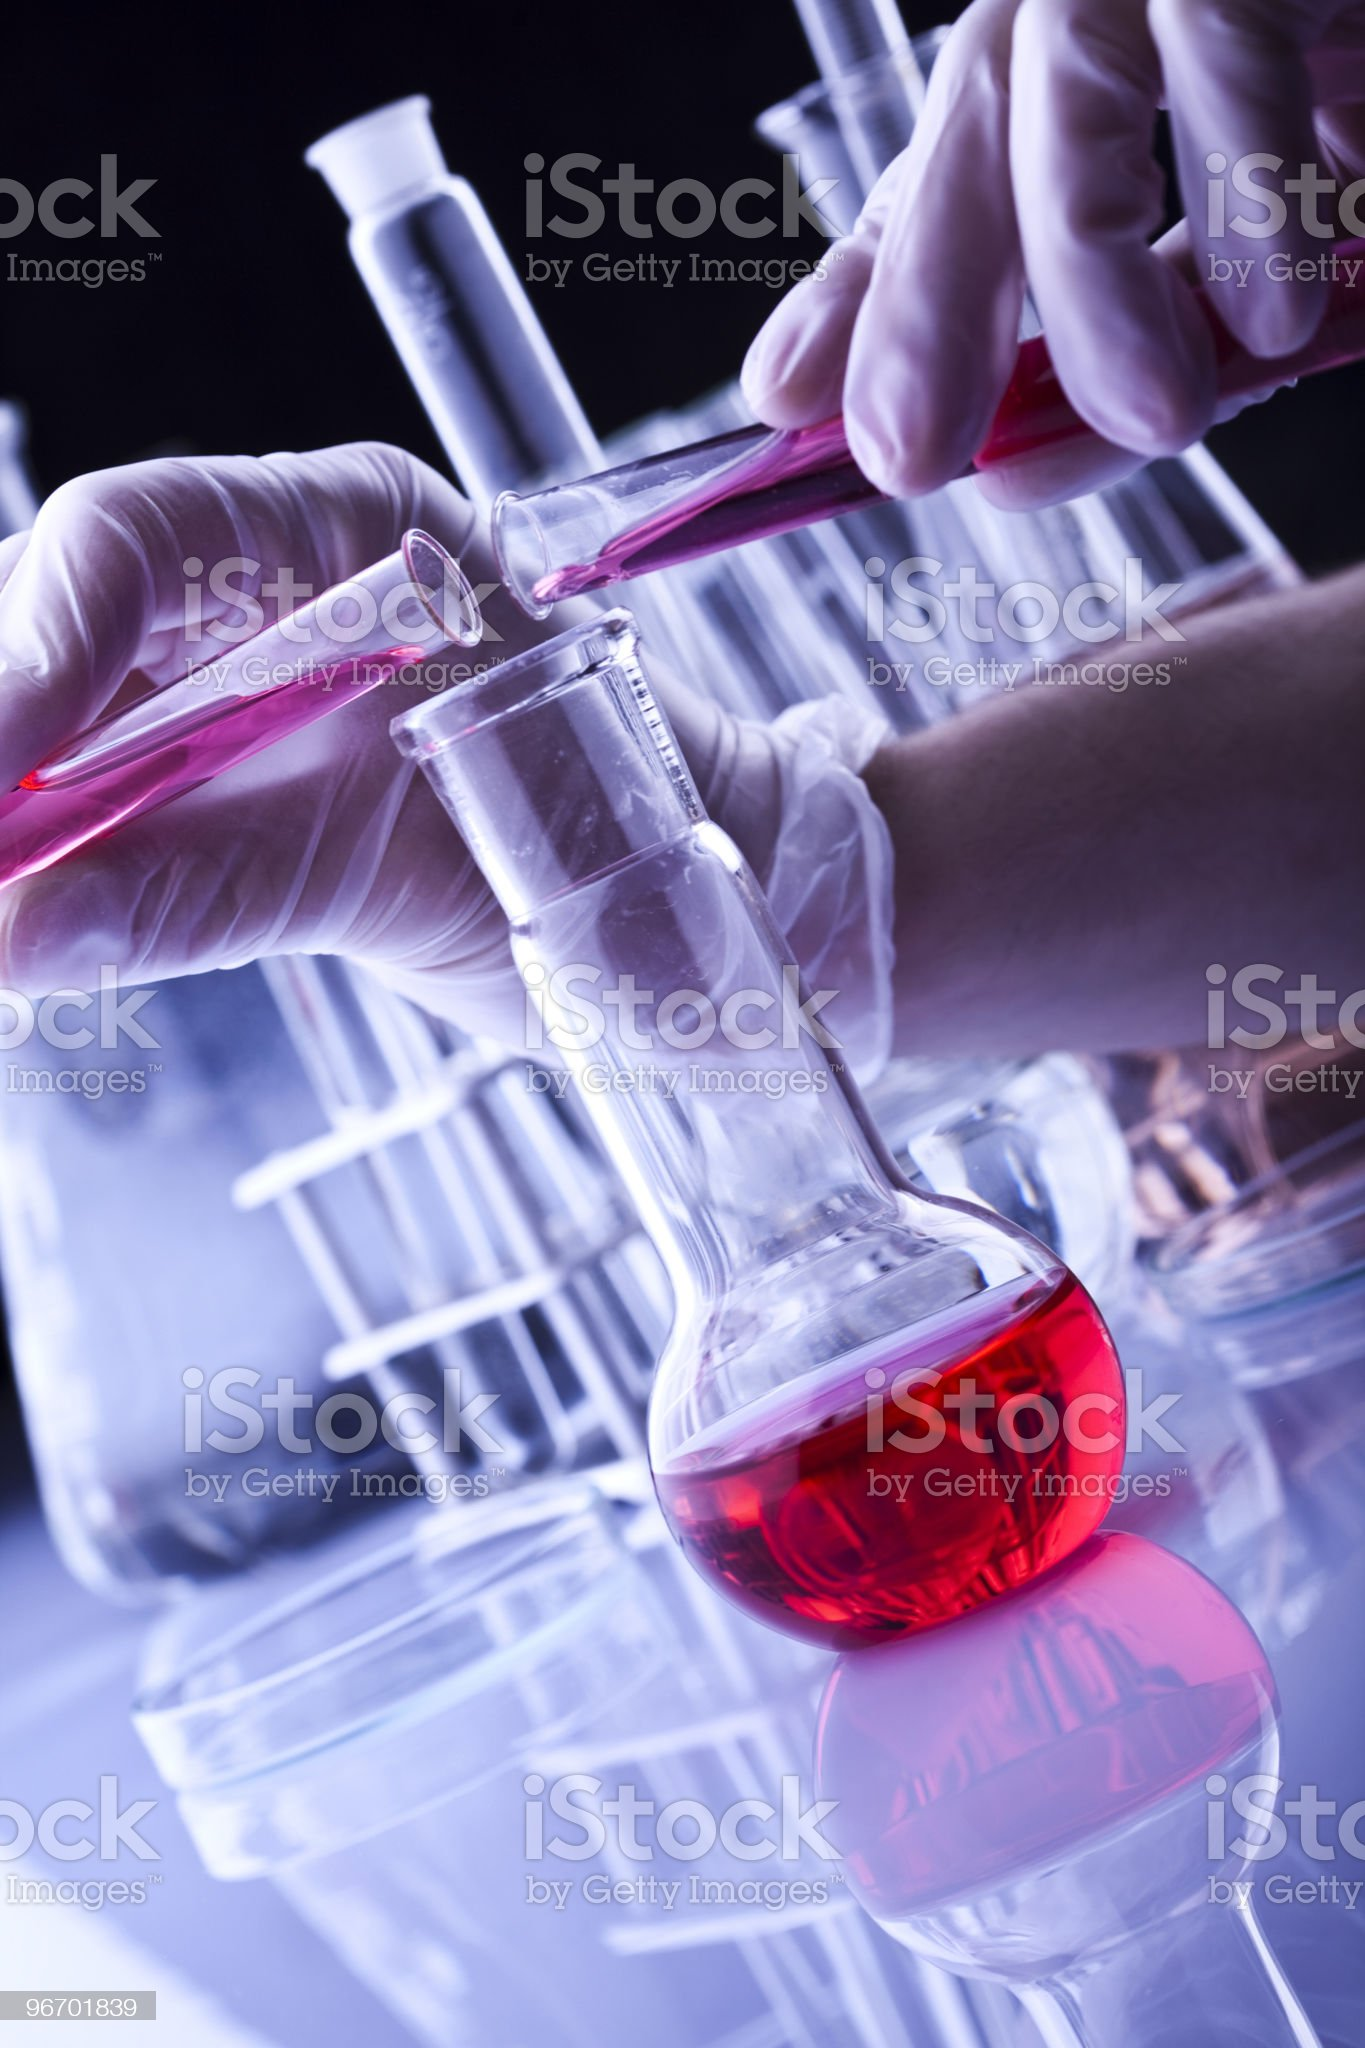 Laboratory, science, testing royalty-free stock photo